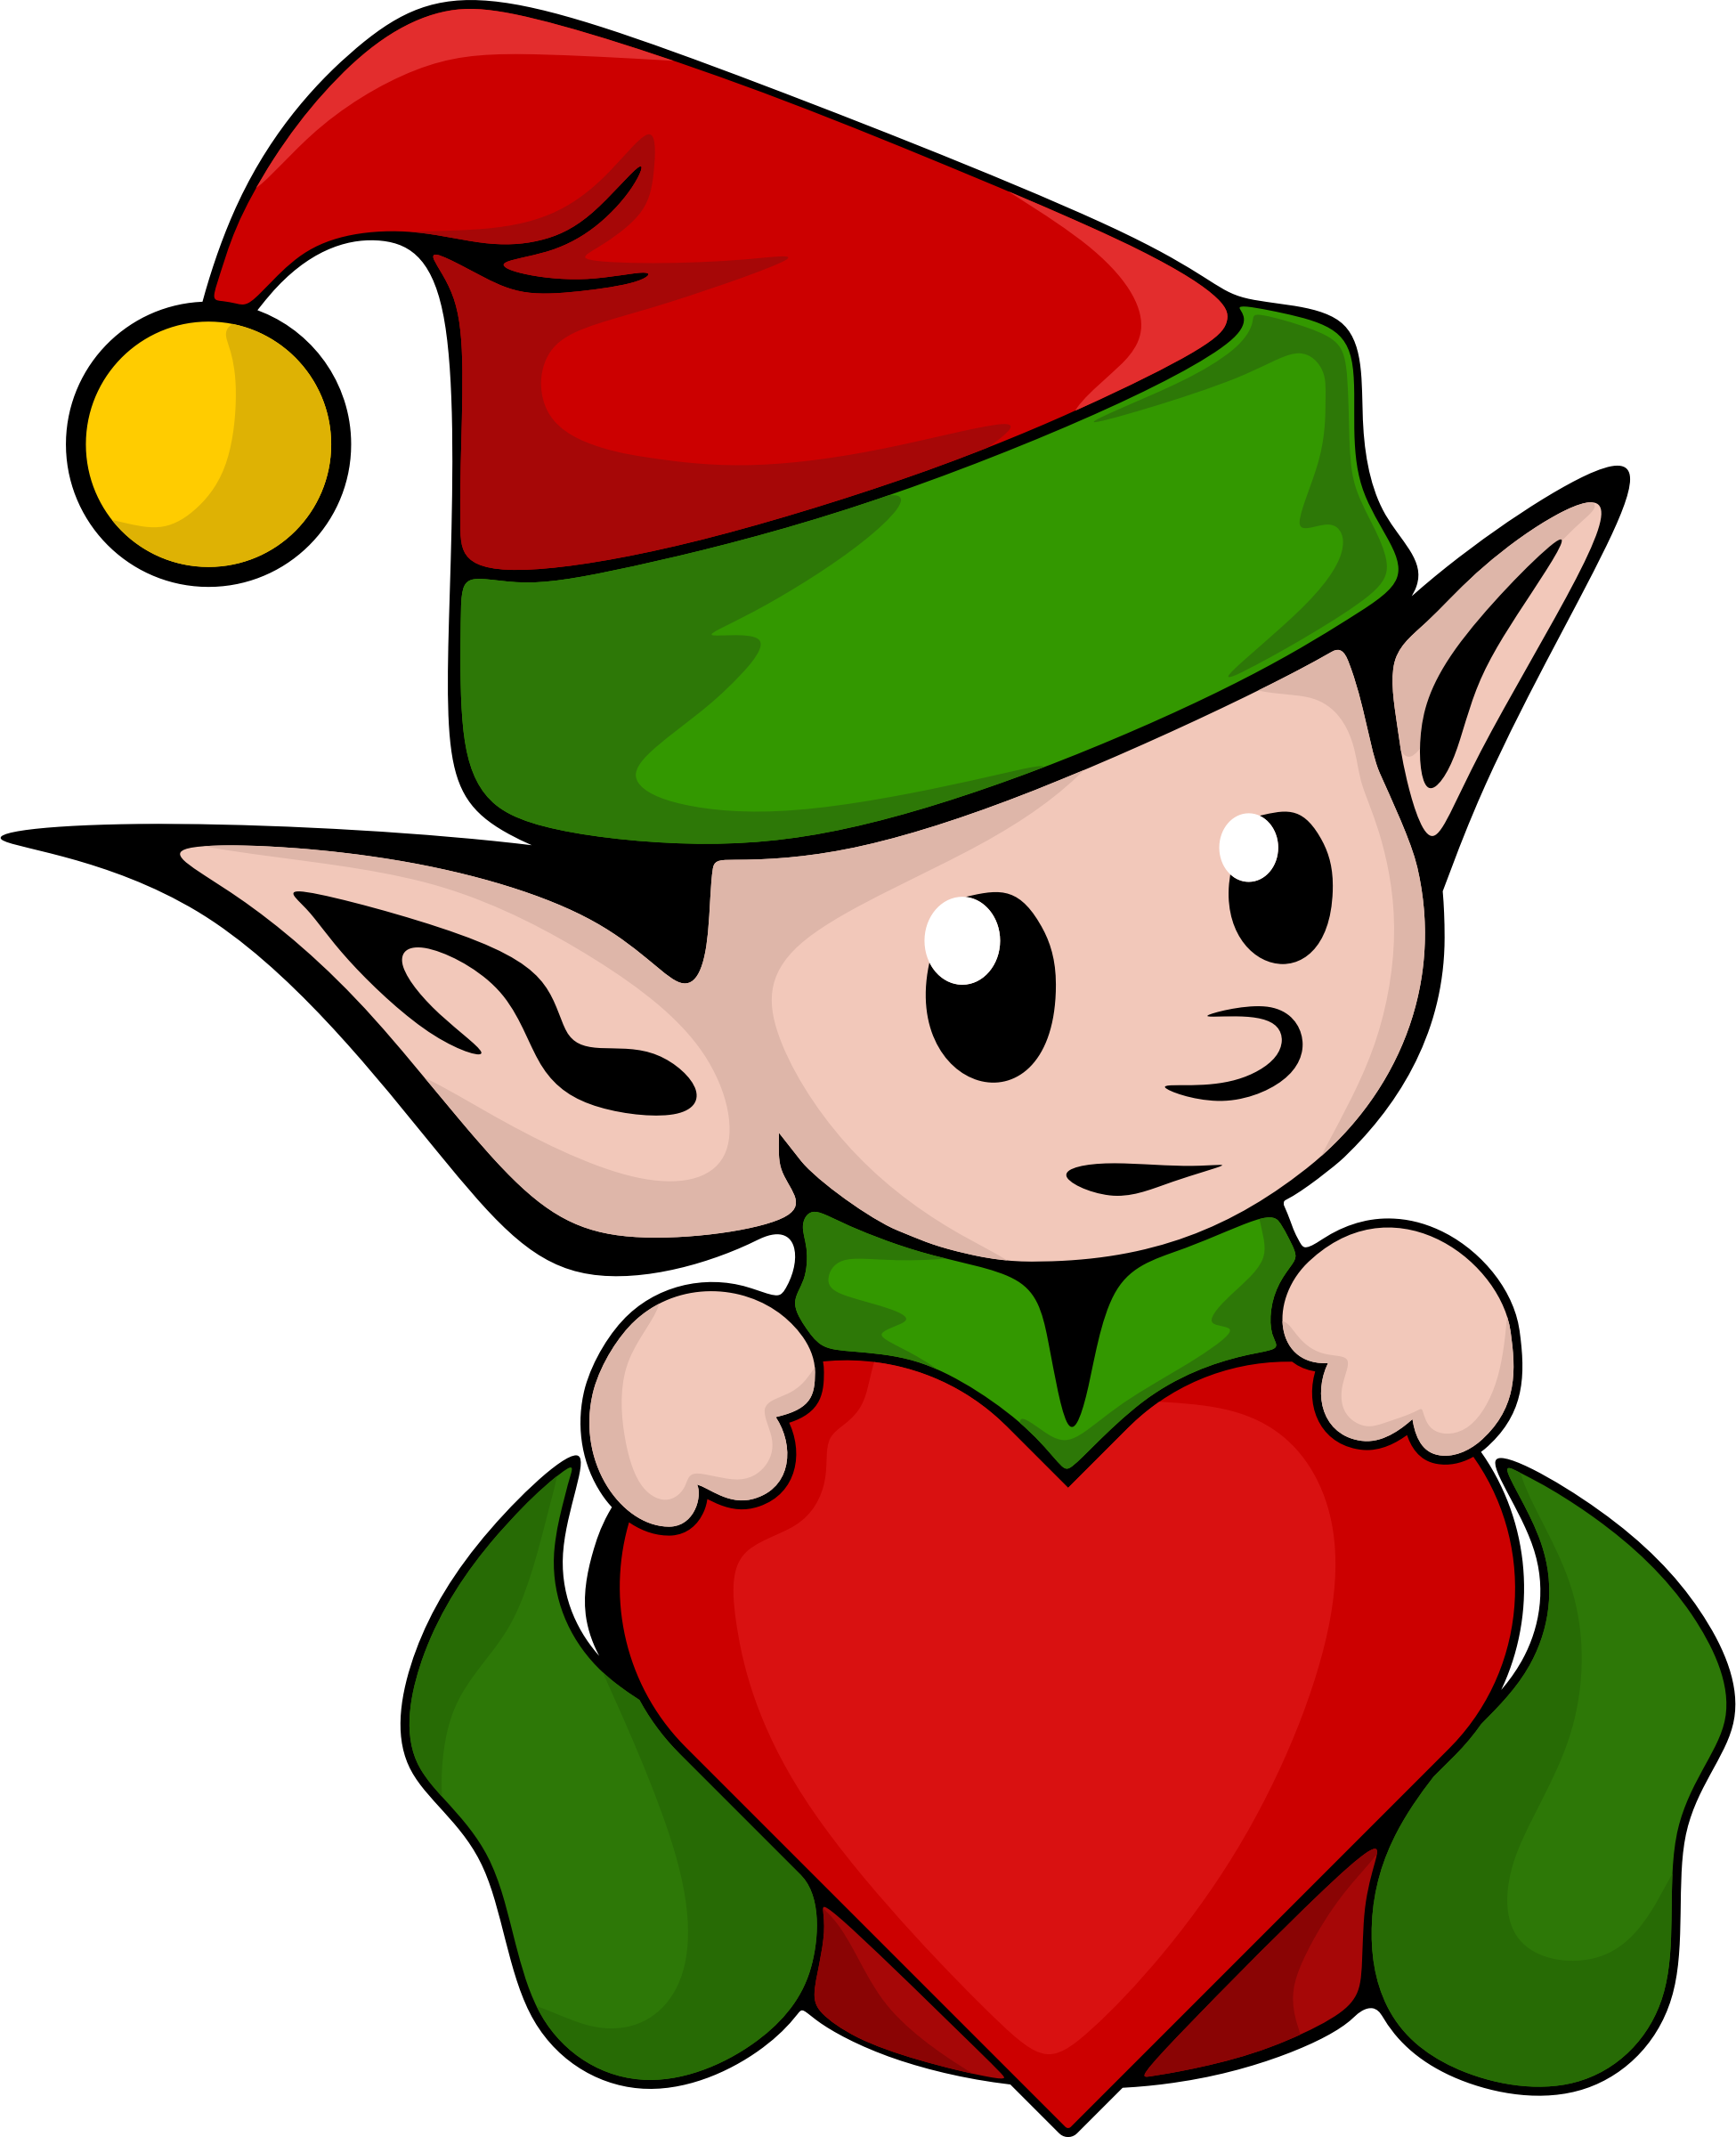 Clipart christmas elf clip art library download Cute Elf Clipart at GetDrawings.com | Free for personal use Cute Elf ... clip art library download